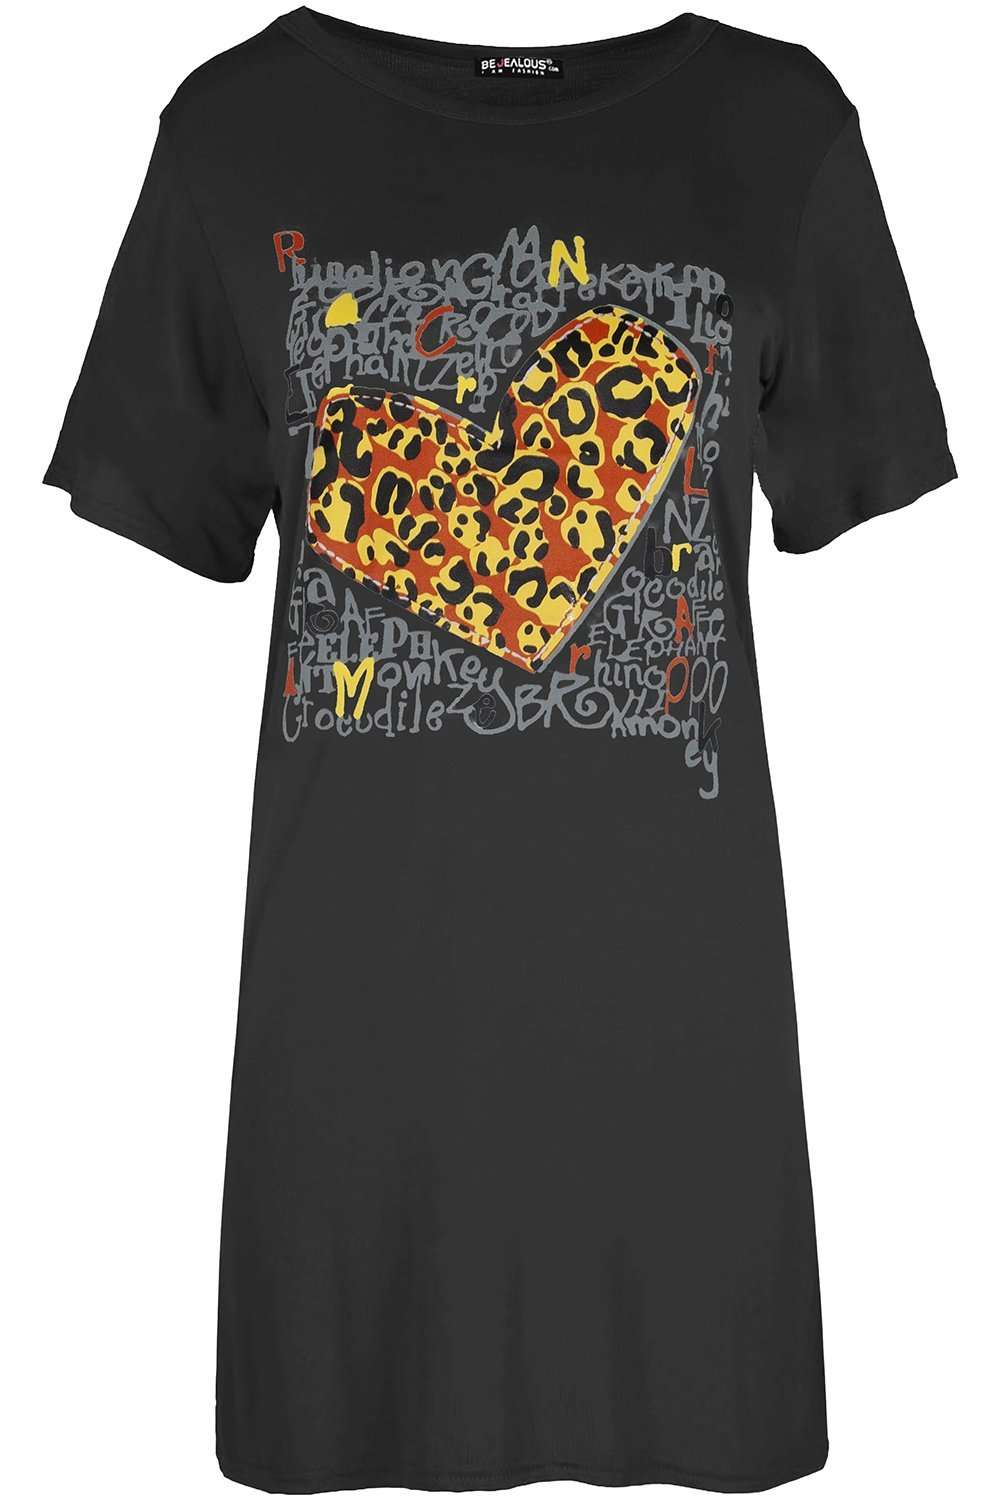 Lorna Leopard Print Graphic Tshirt Dress - bejealous-com